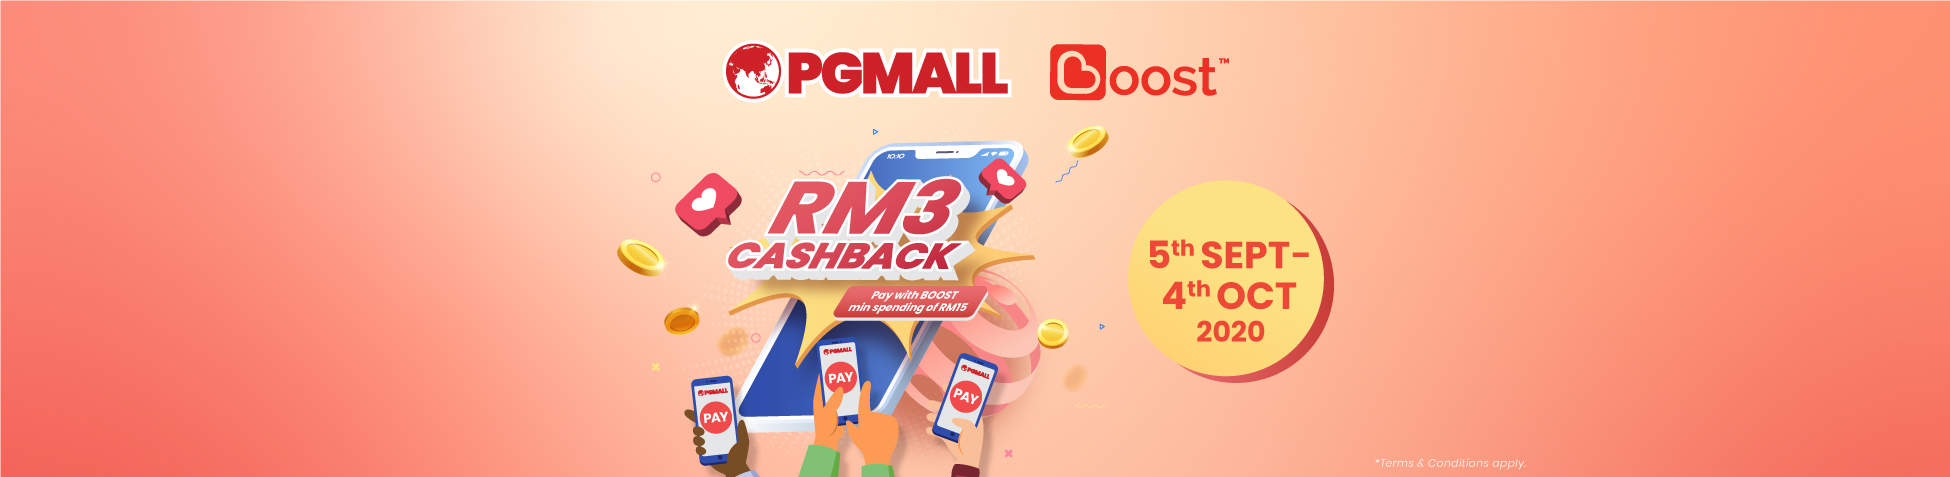 Boost di PG Mall